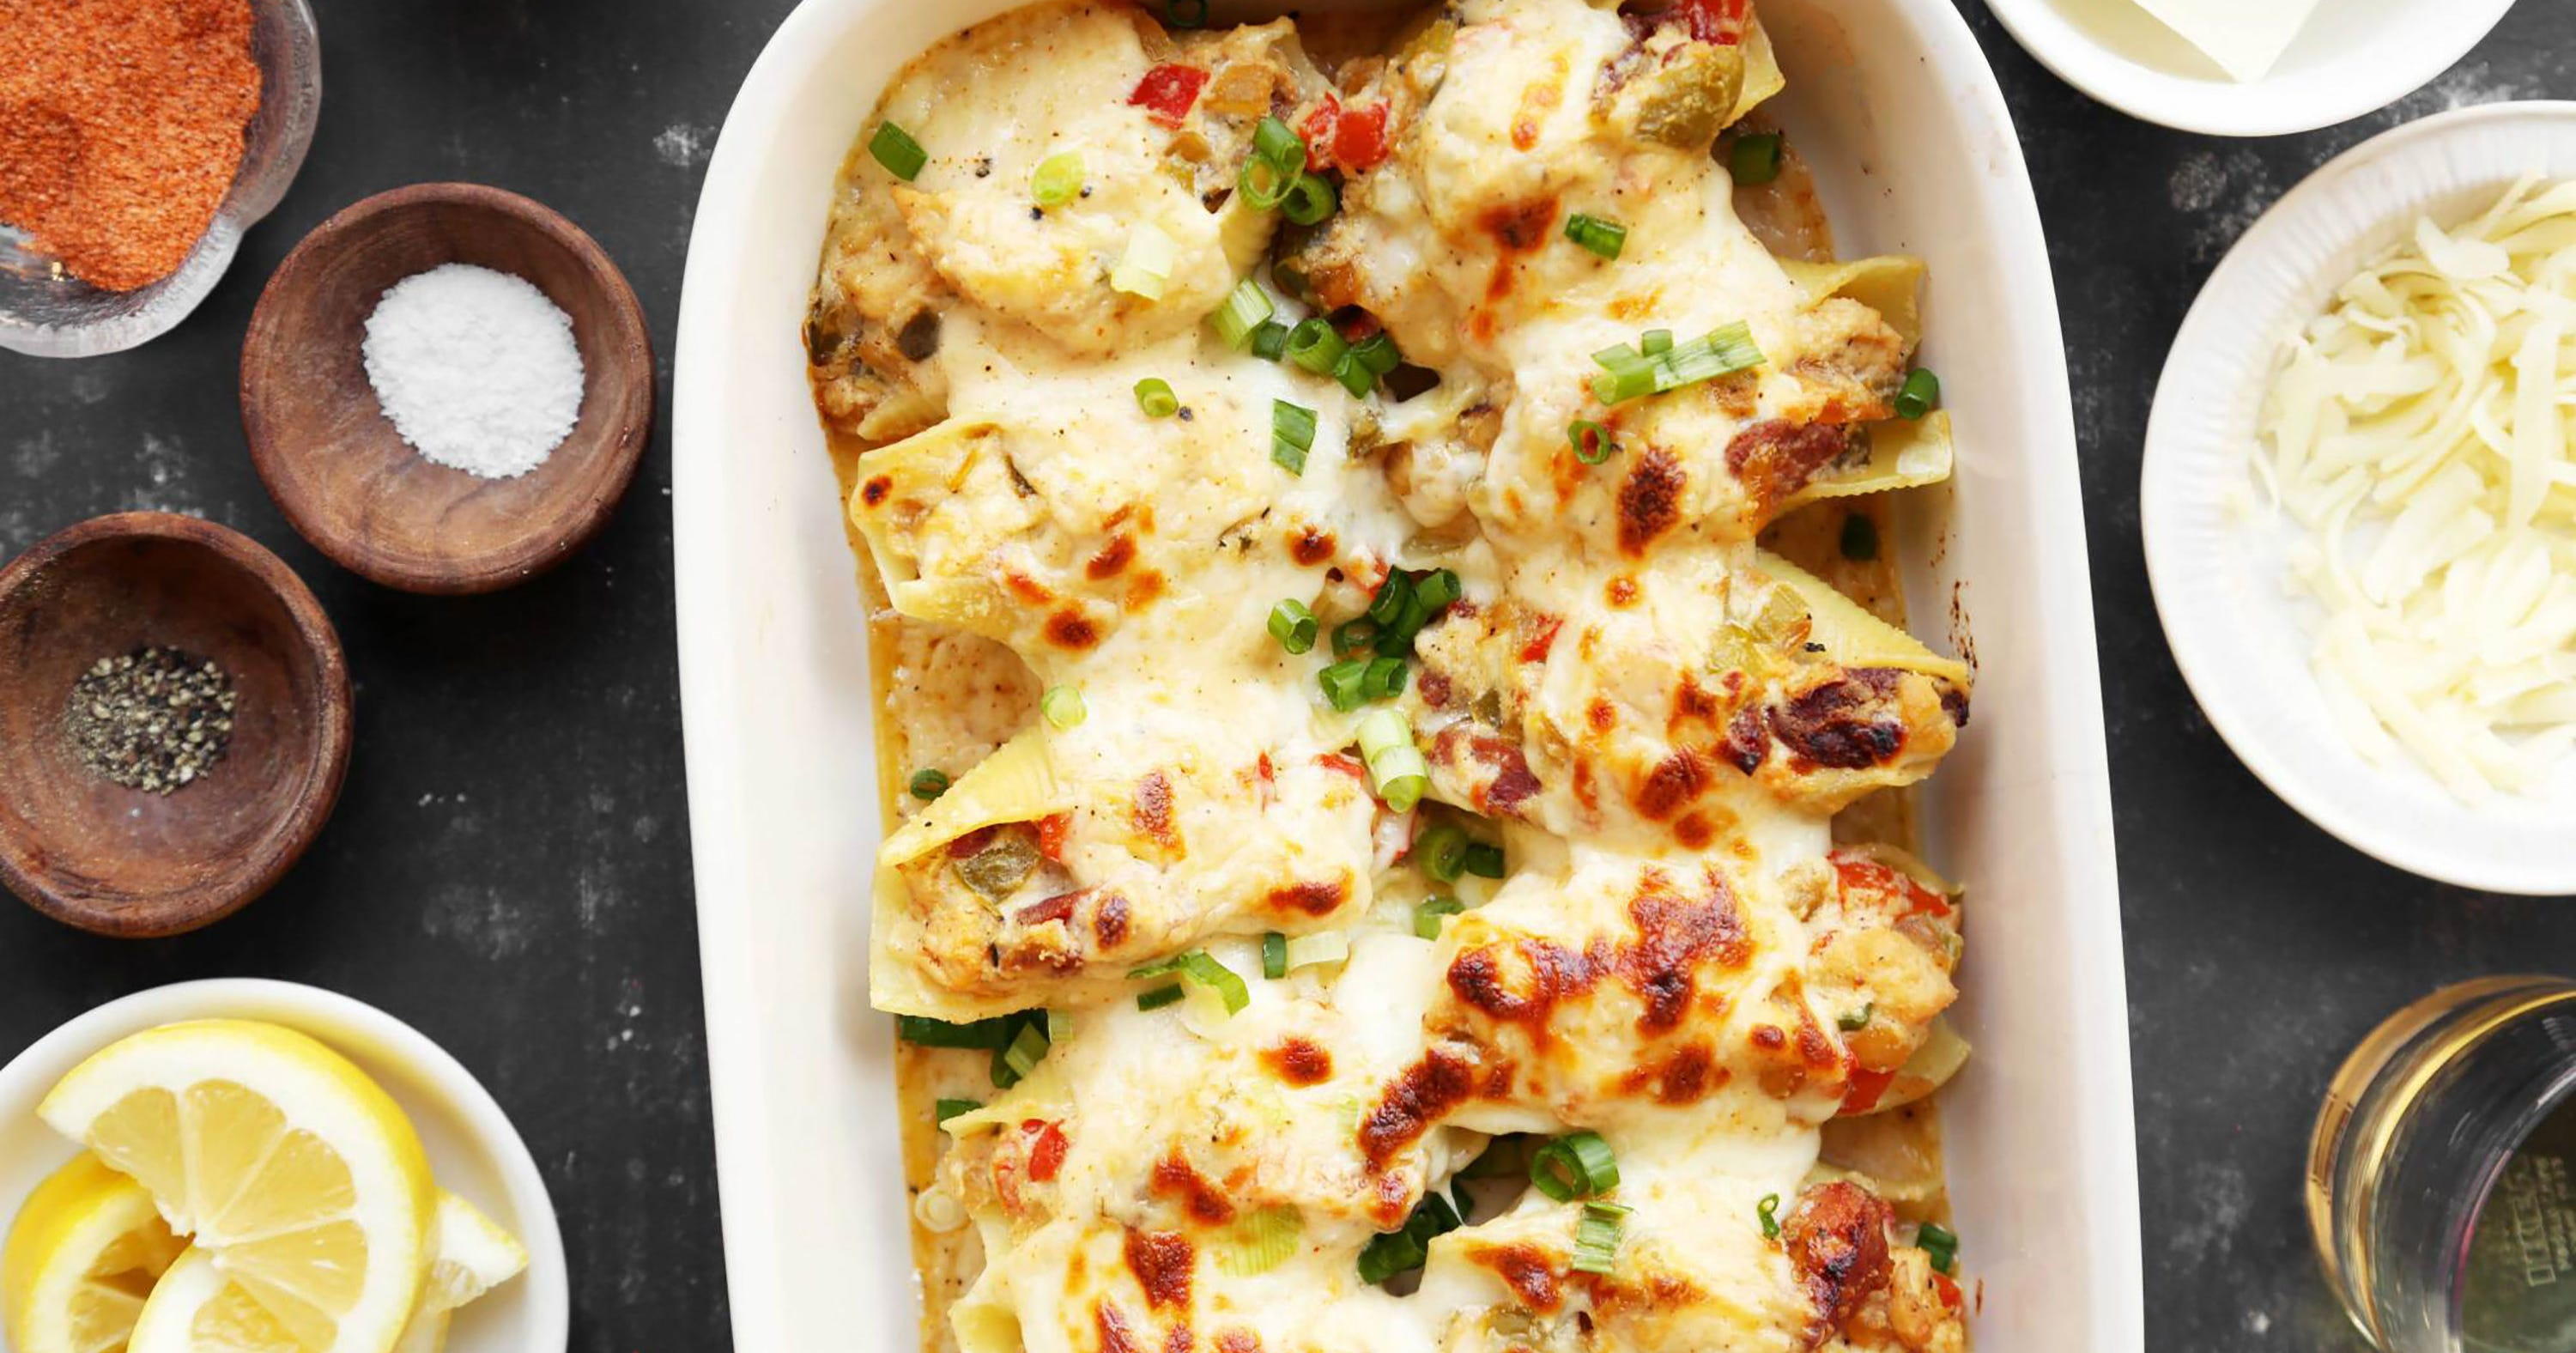 Stuffed Shells Are Here To Make All Your Dreams Come True